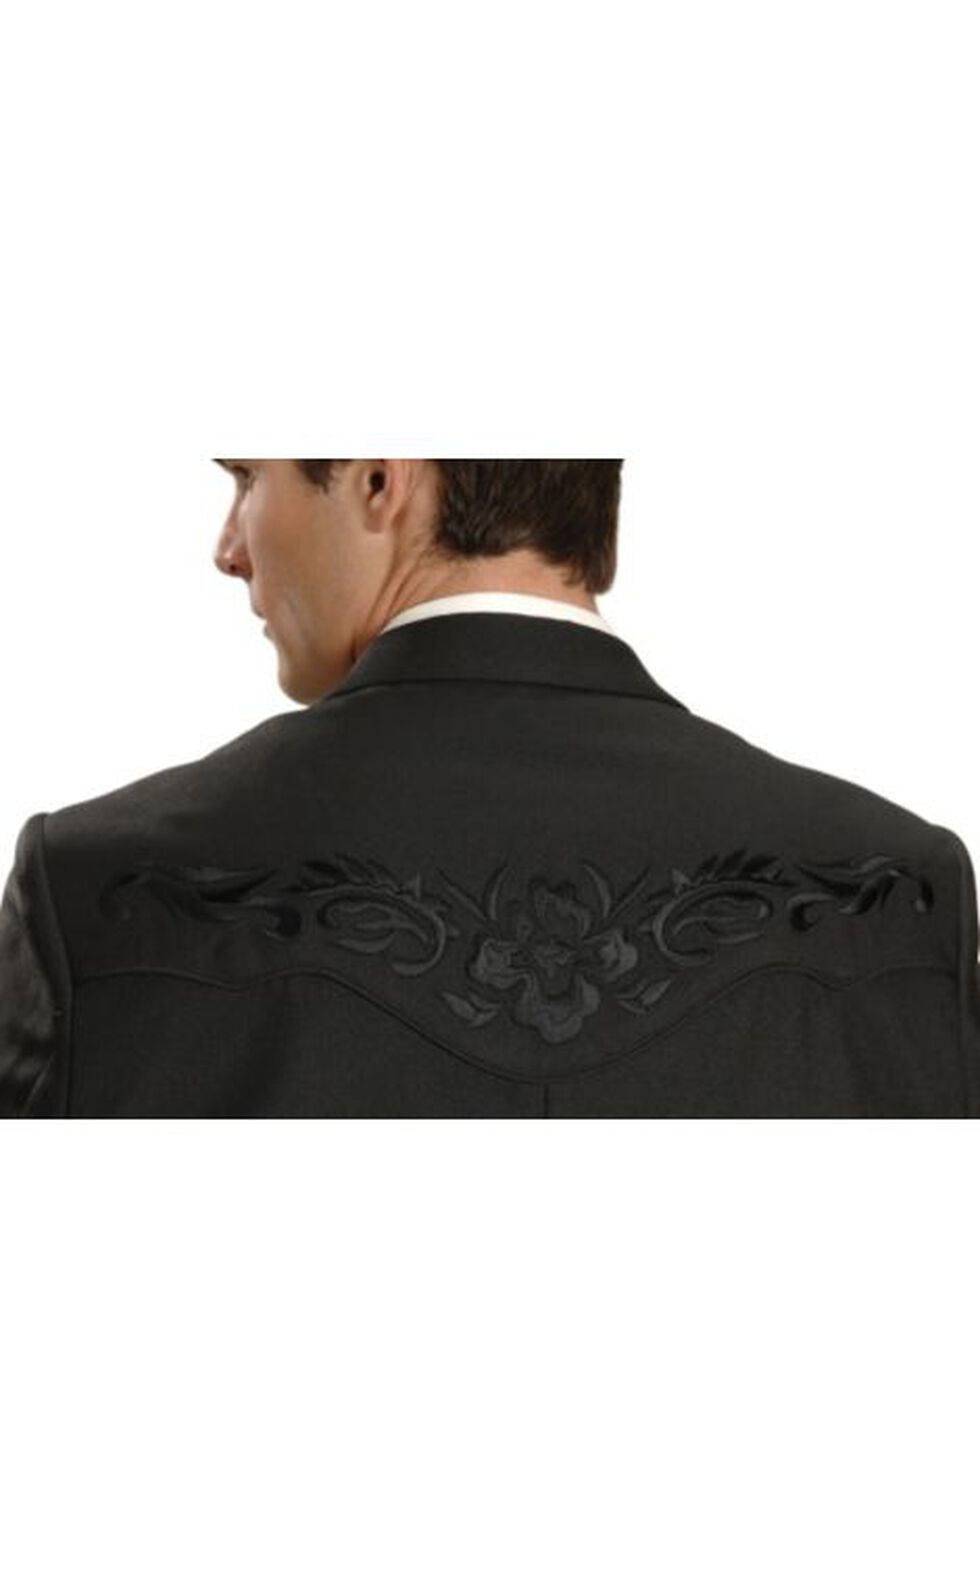 Scully Men's Floral Yoke Blazer - Big and Tall Sizes (50T - 54T), Black, hi-res